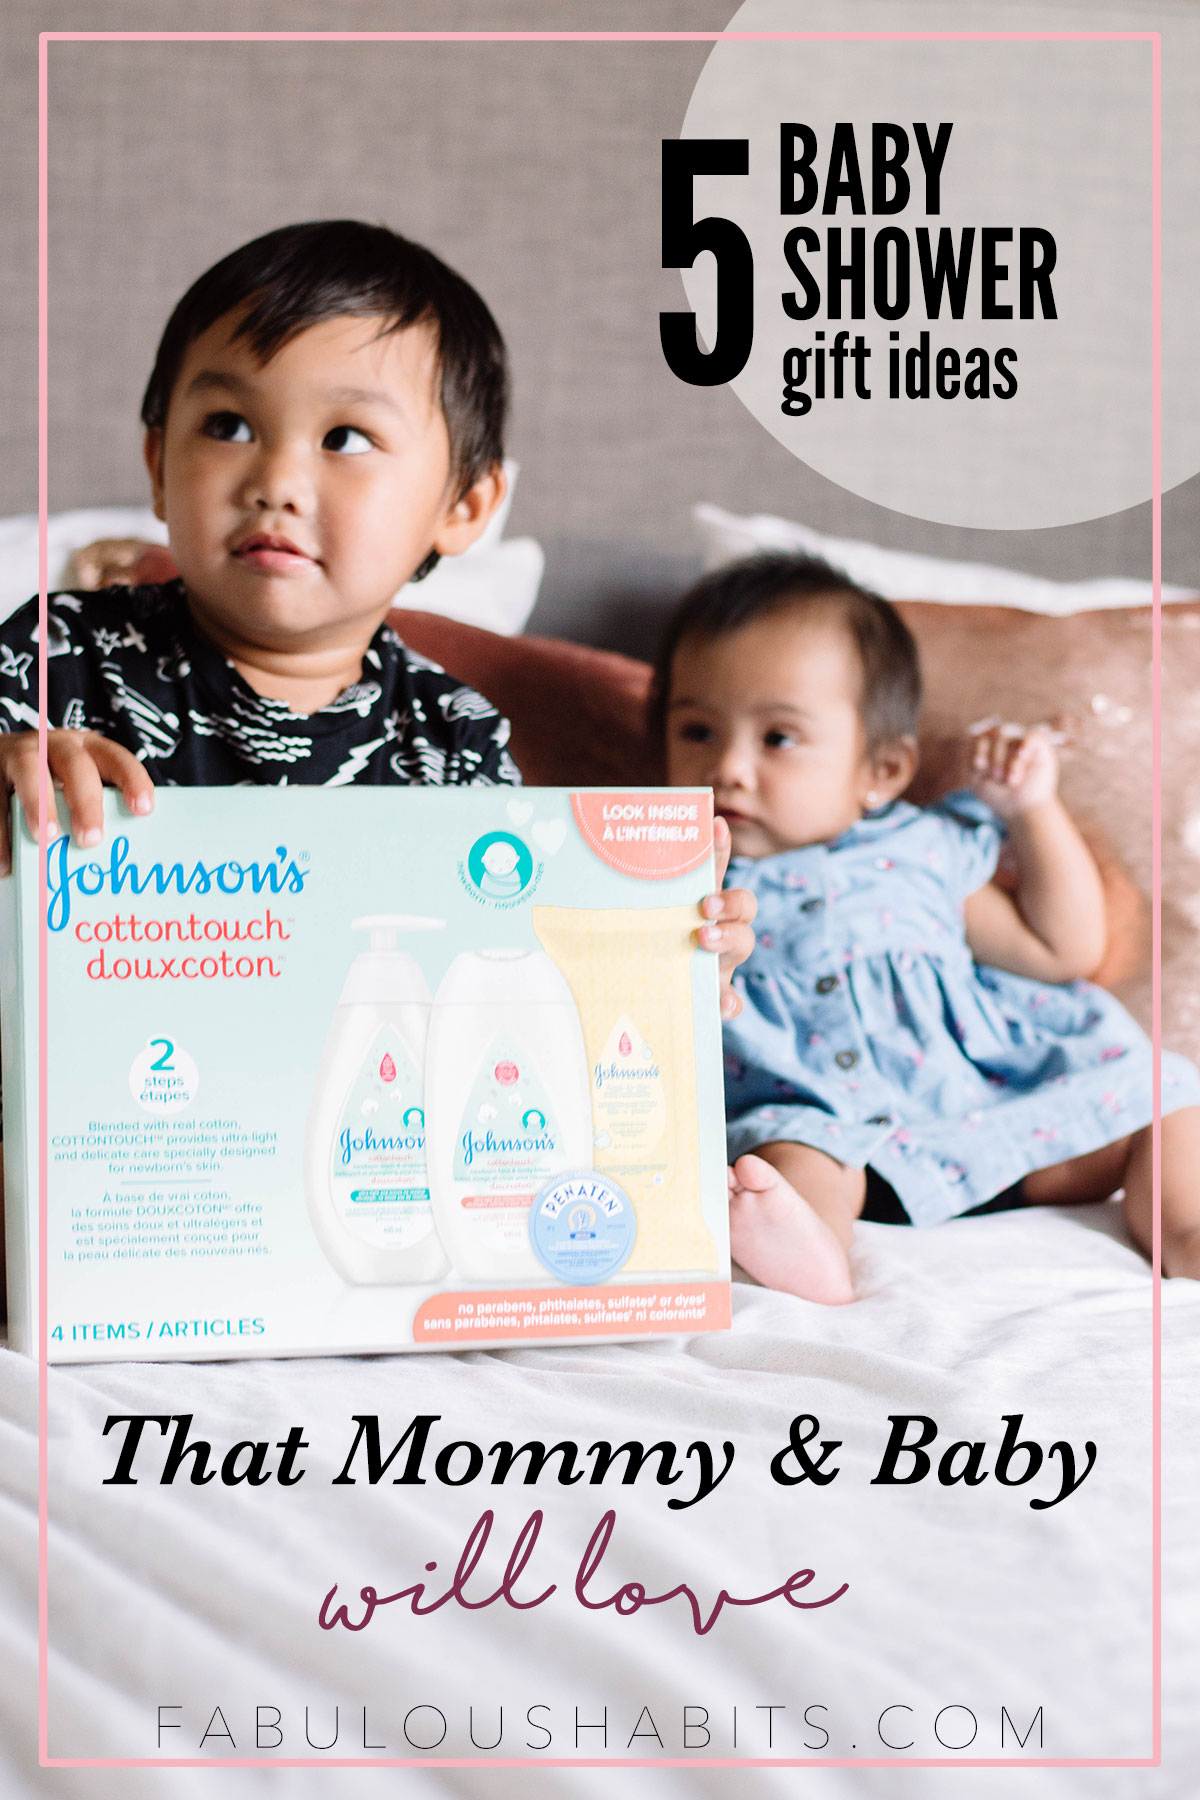 Attending a baby shower soon? Here are some unique baby shower gift ideas that any mommy & baby would appreciate! #babyshowergifts